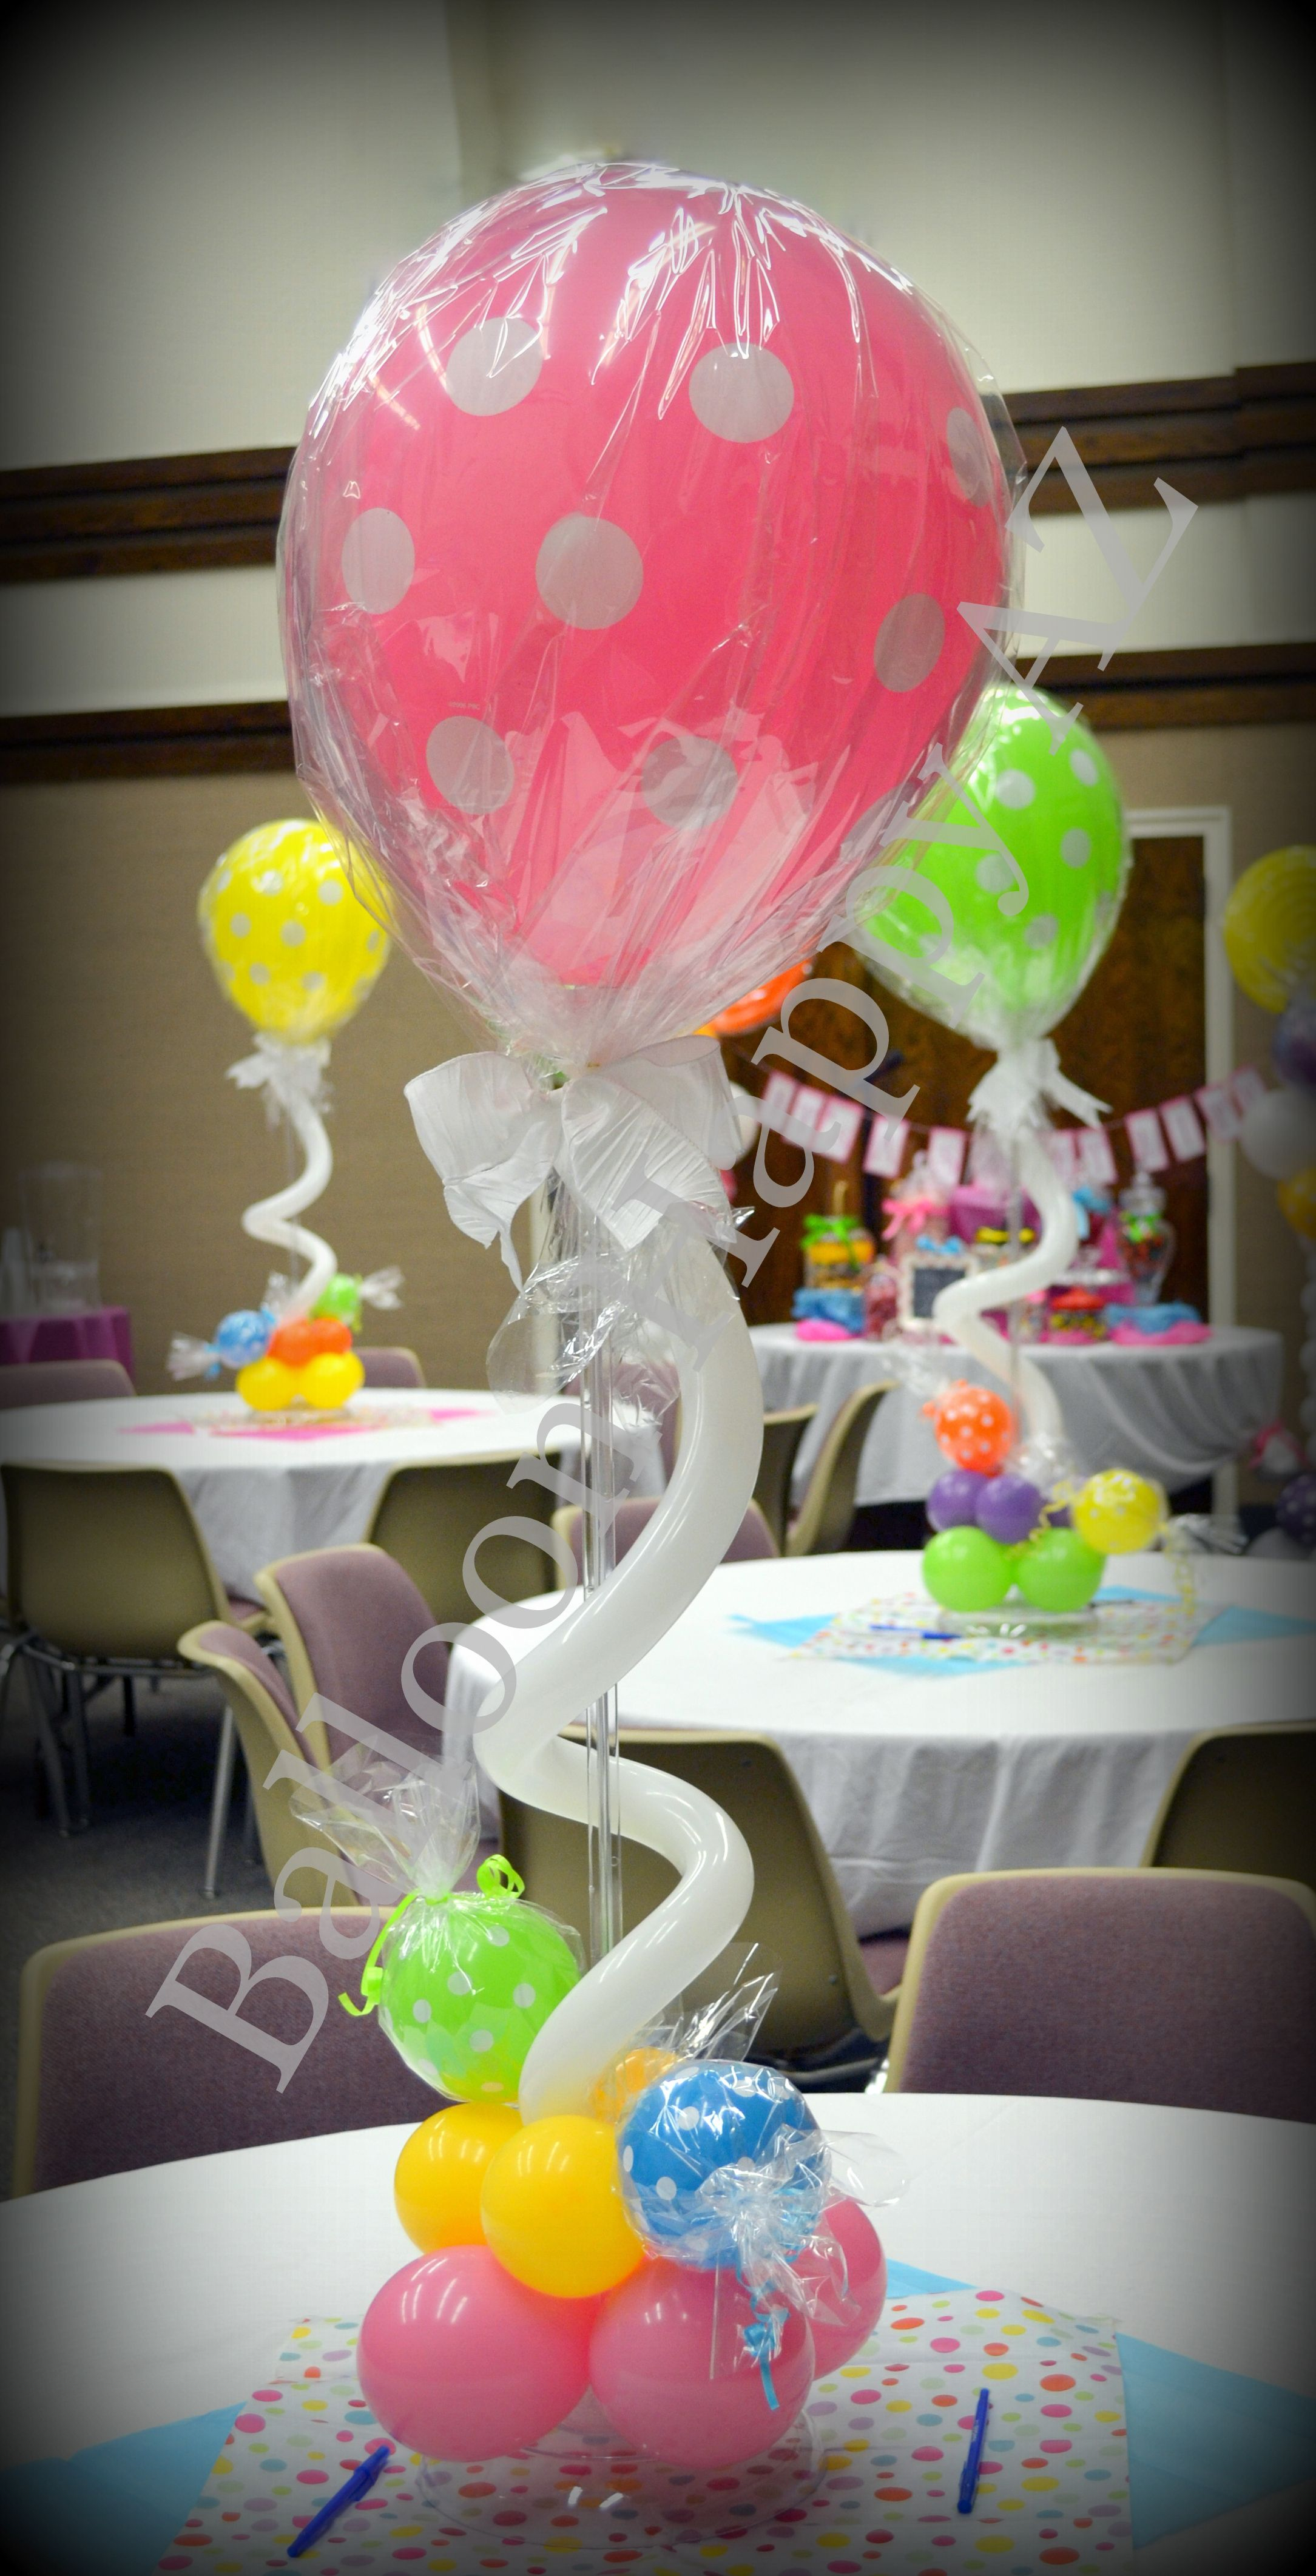 Balloon Gifts And Centerpieces   WOW Your Friends! Unique And Fun!